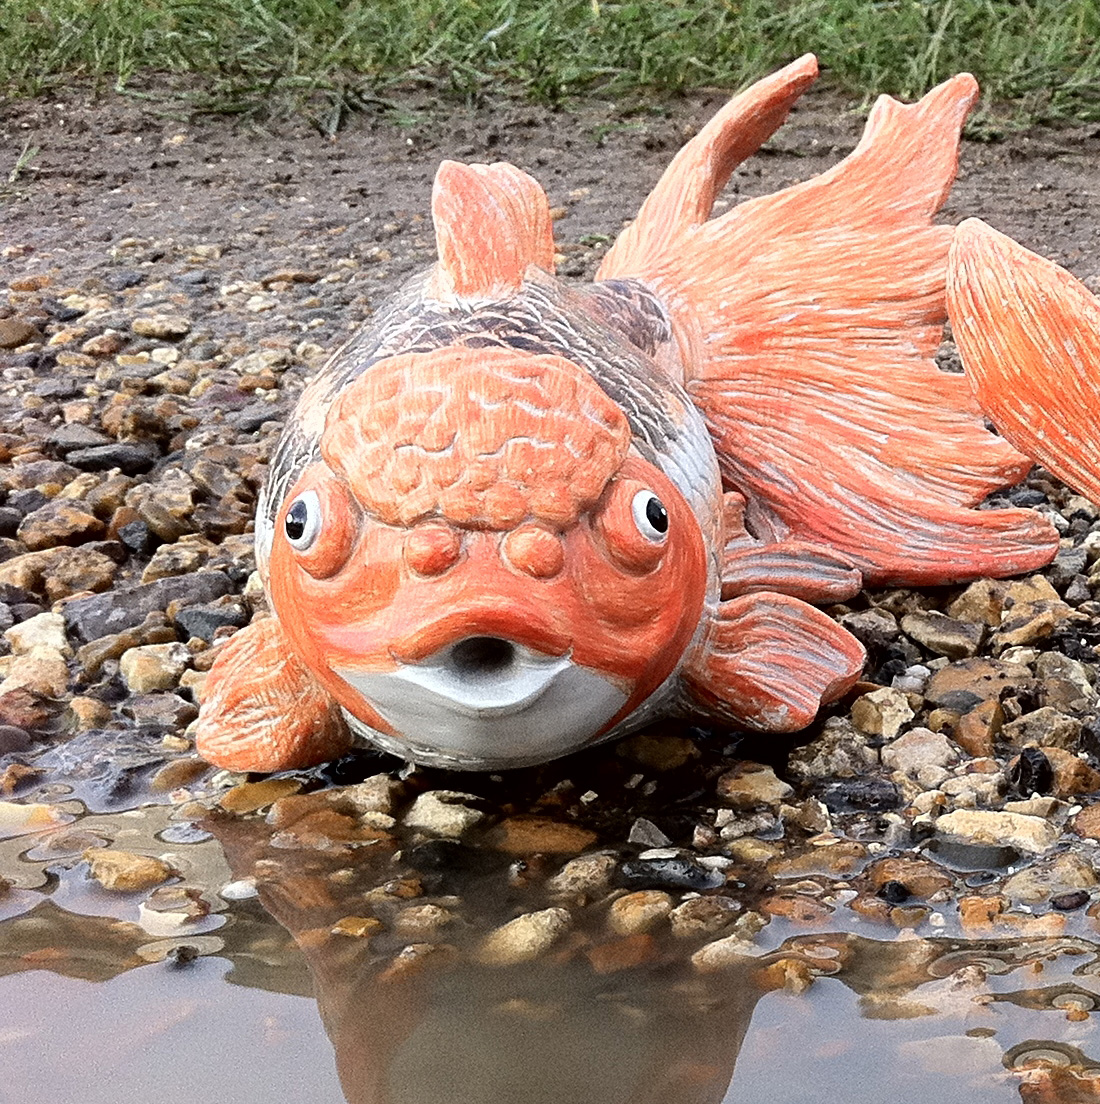 Stsatuette For Outdoor Ponds: GARDEN POND LARGE FISH INDOOR OUTDOOR RESIN ORNAMENT